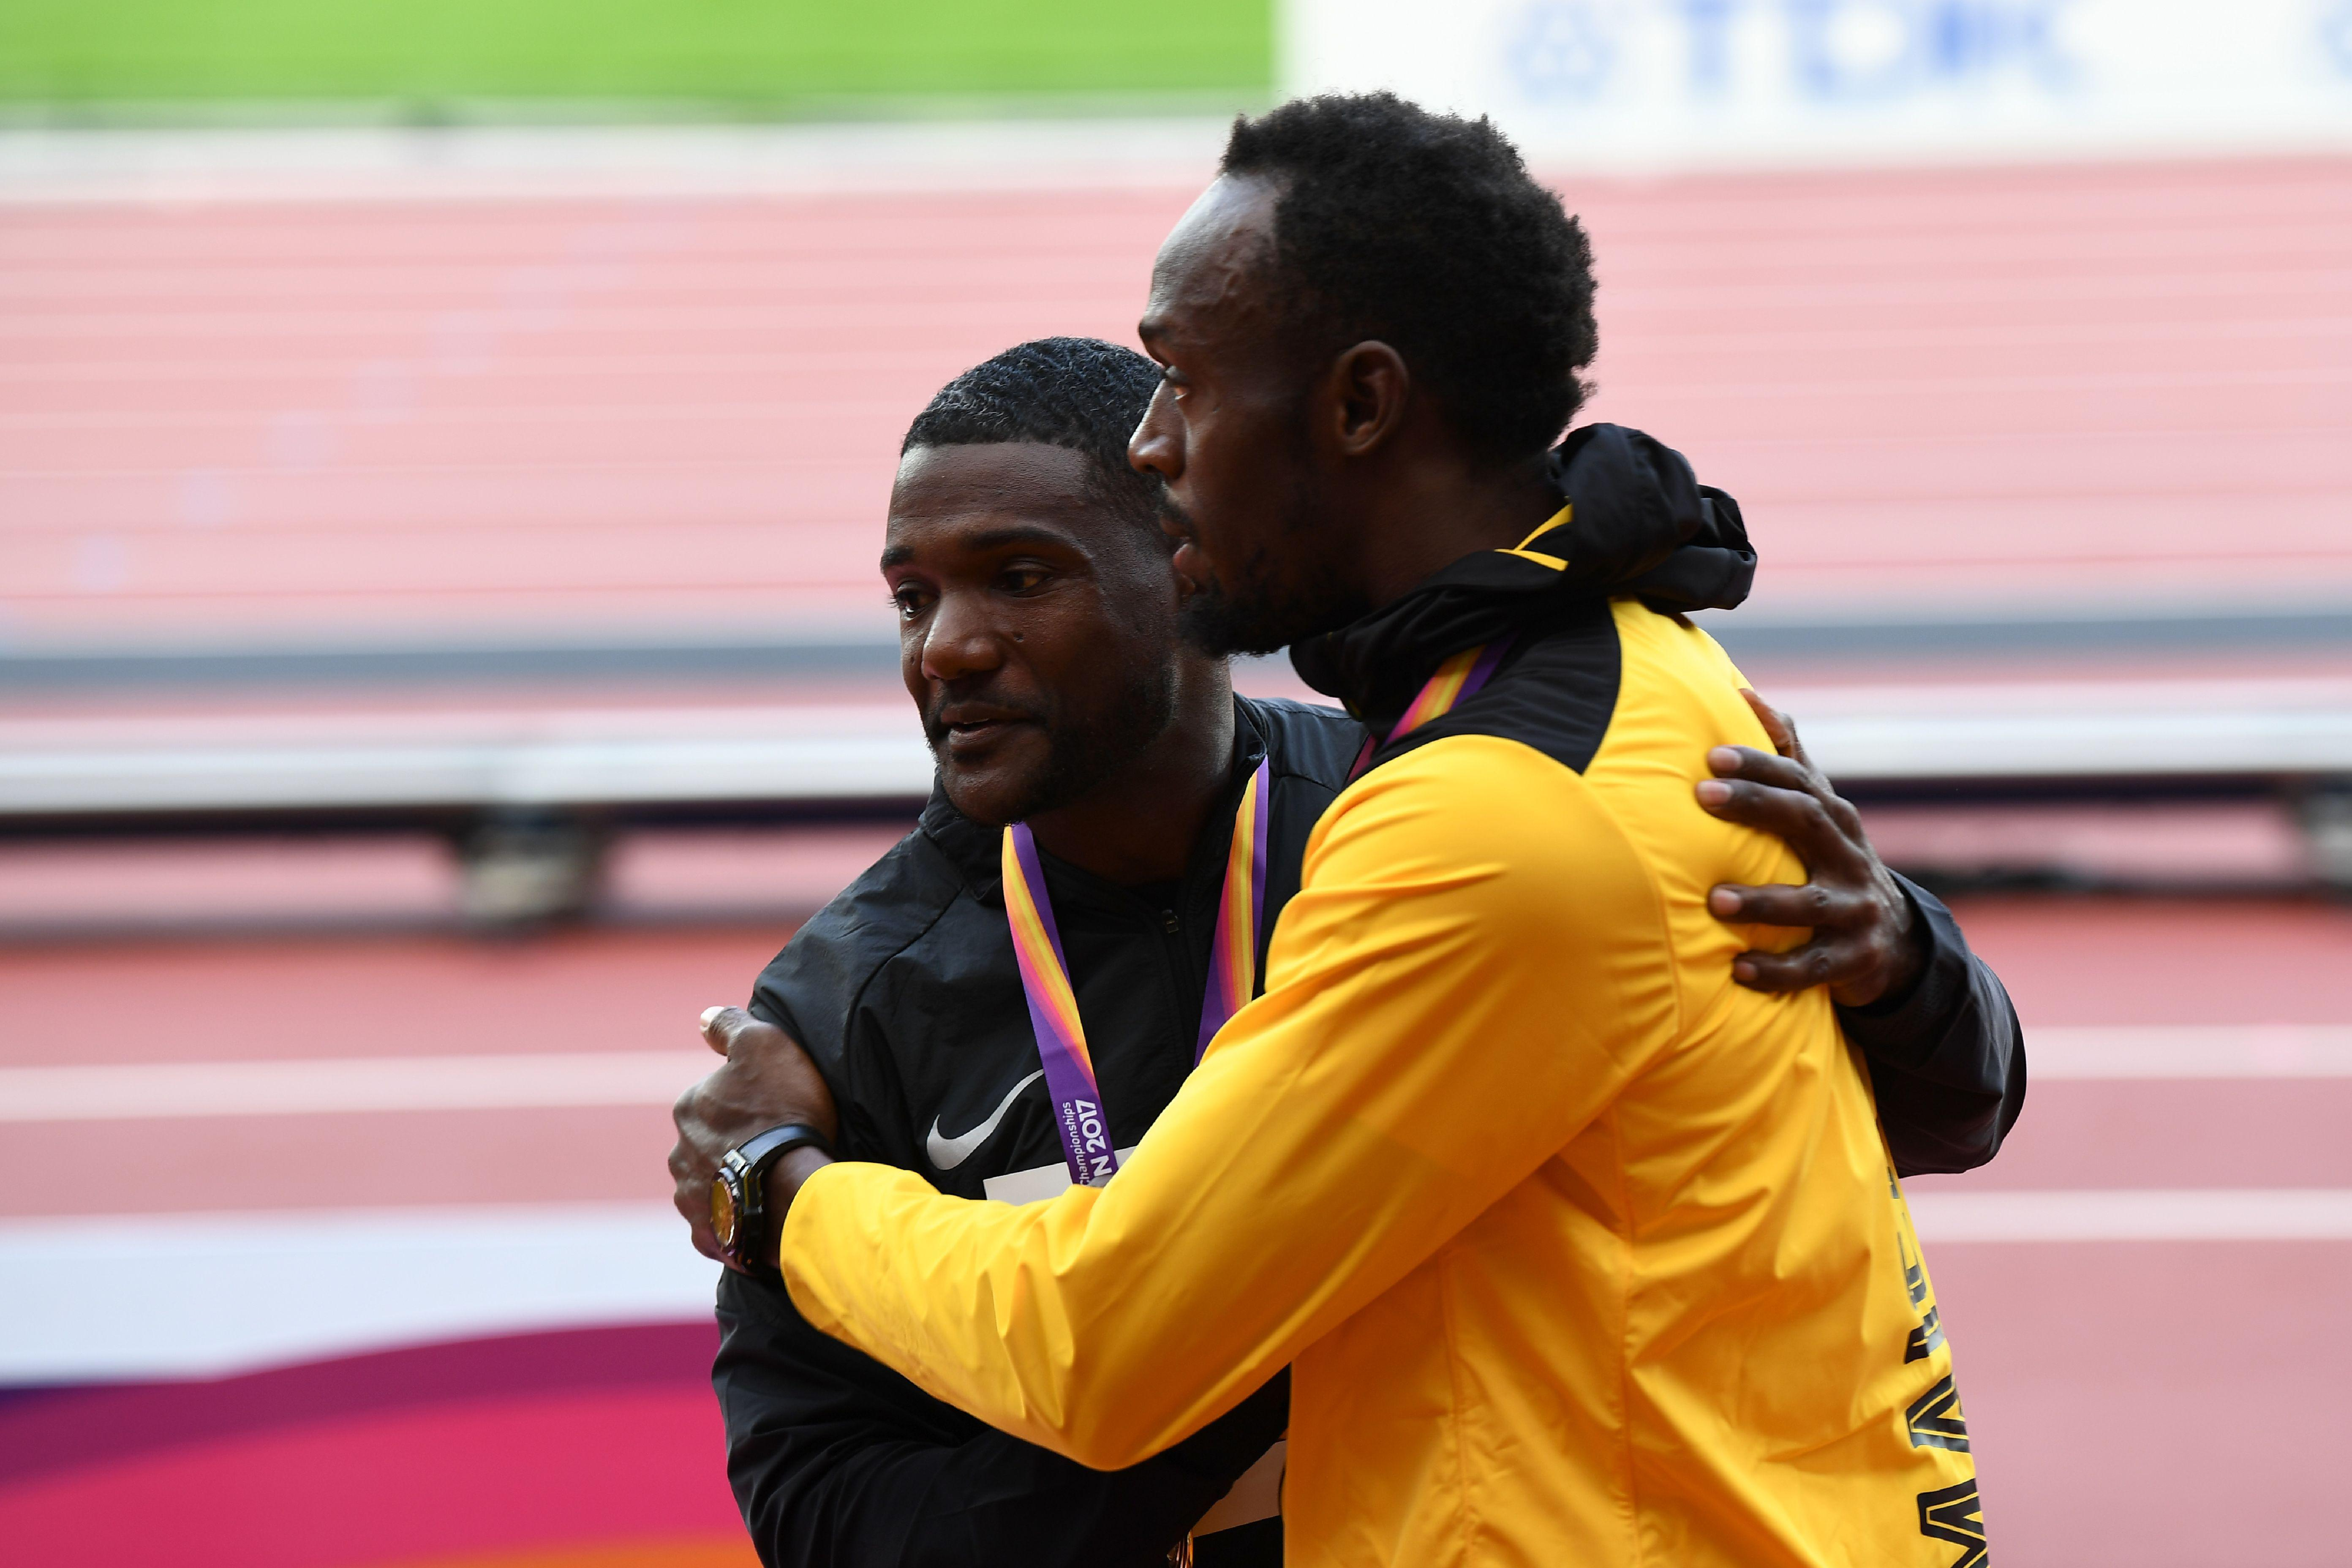 Usain Bolt and Justin Gatlin embrace each other after receiving their medals